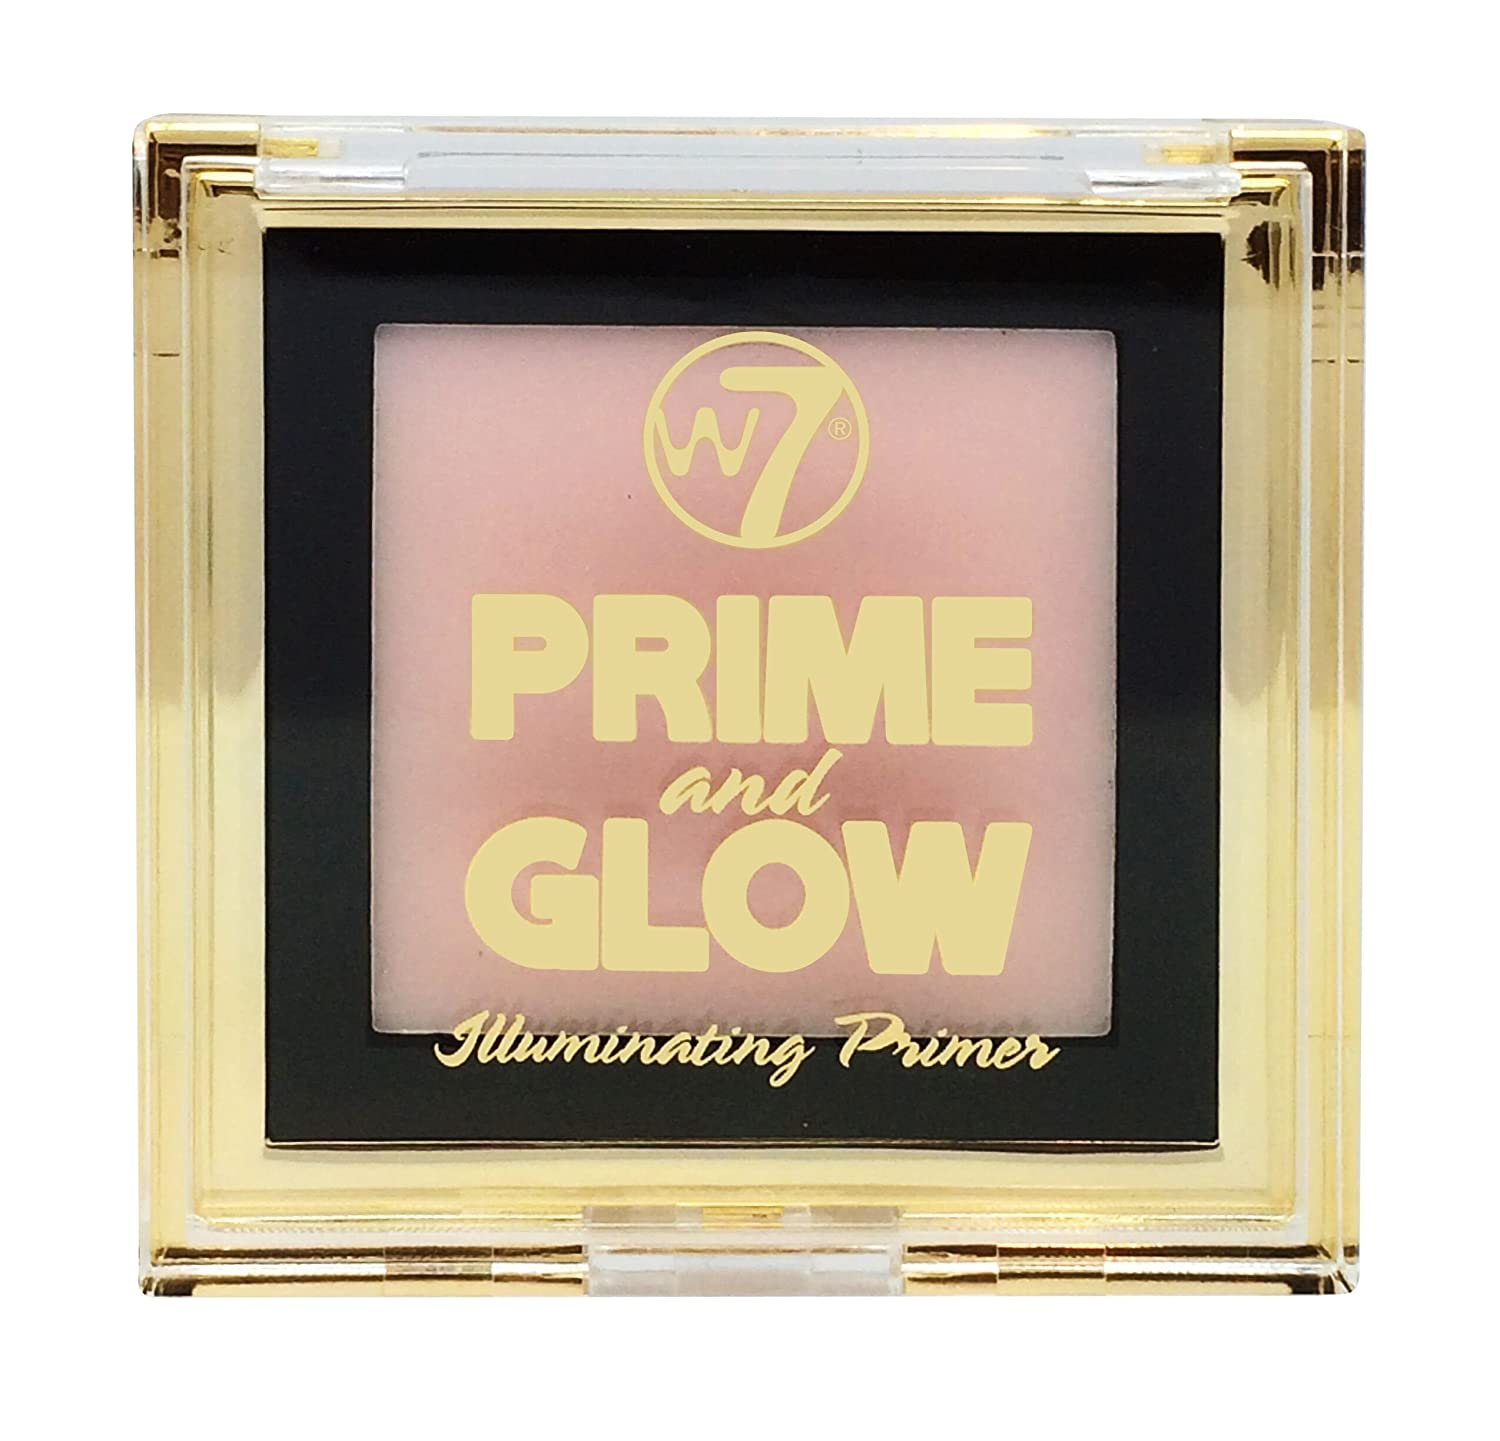 W7 Prime And Glow Illuminating Primer Compact by W7 W7 Cosmetics Spain 5060406142211